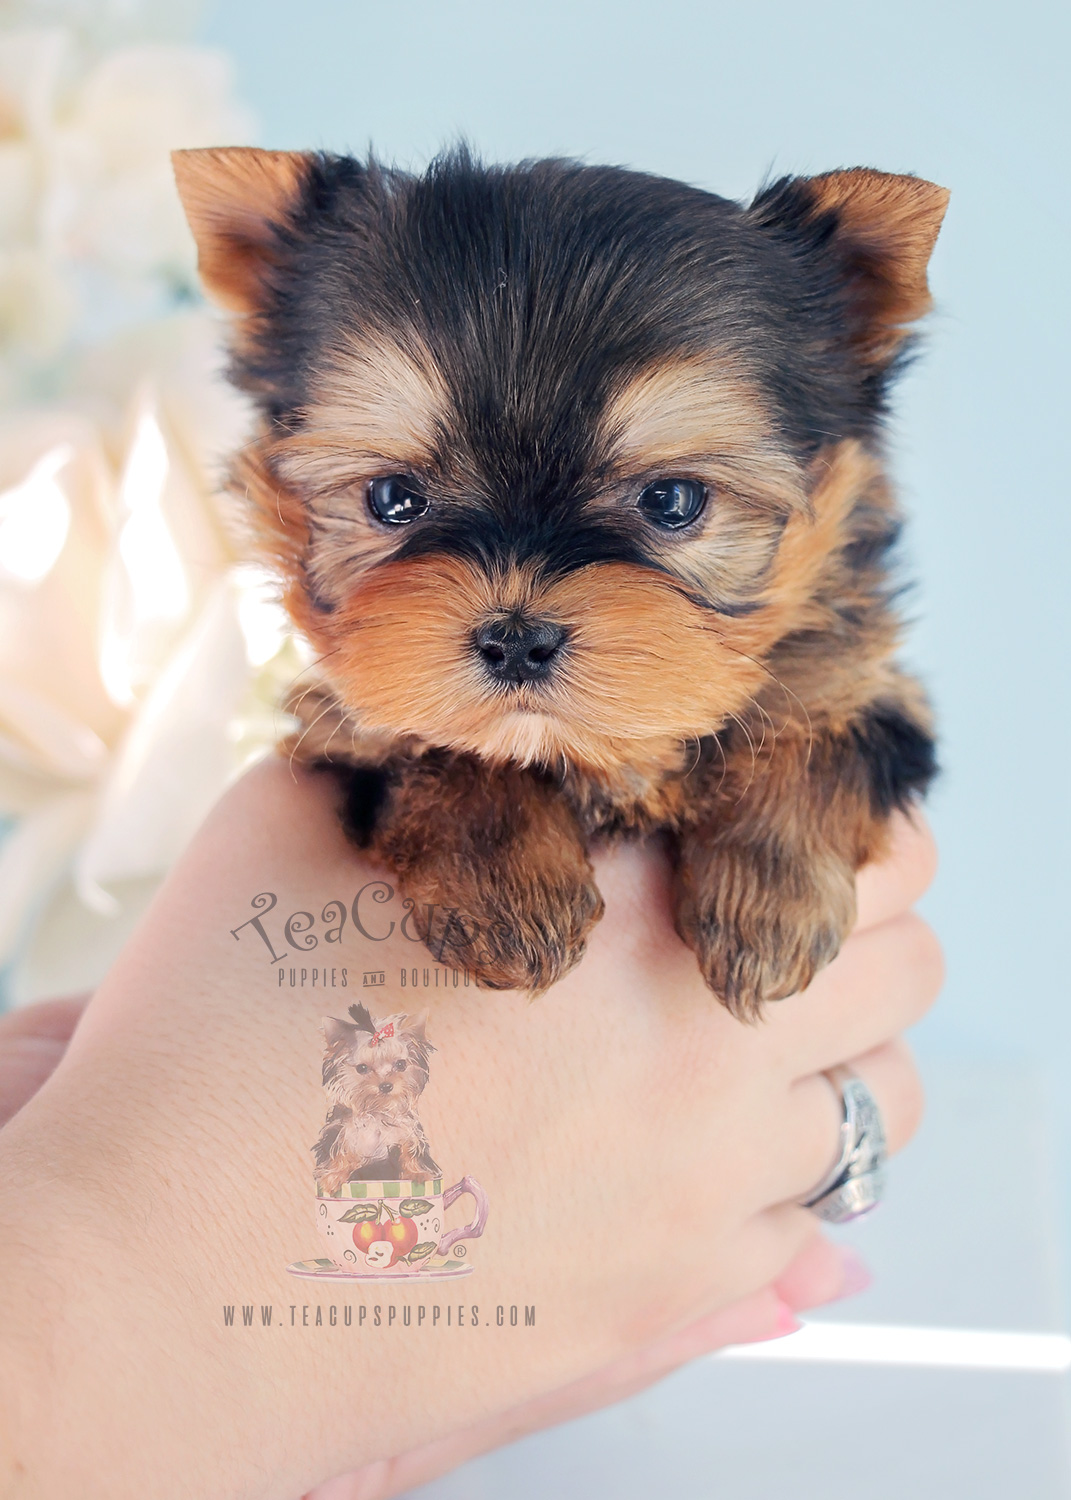 Puppy For Sale Teacup Puppies #281 Teacup Morkie